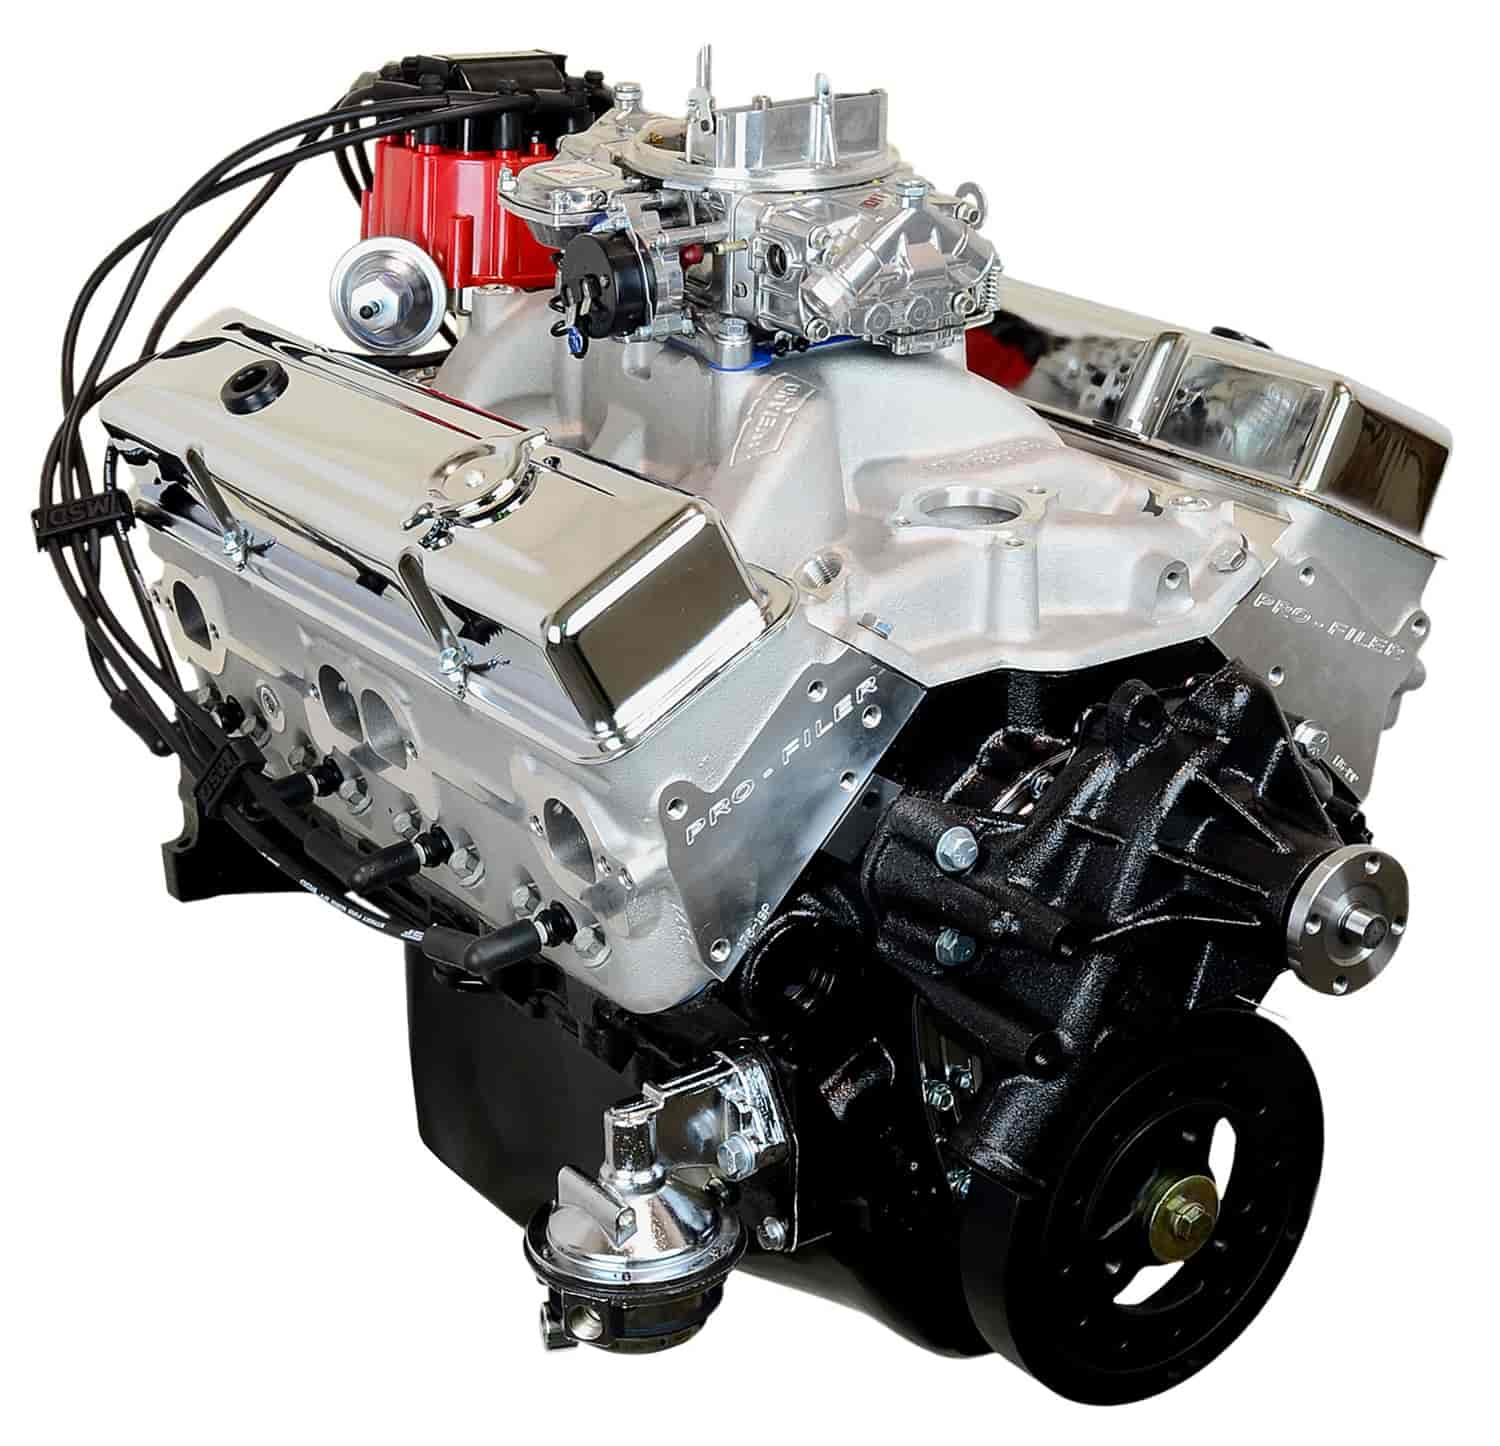 Atk Engines Hp91c High Performance Crate Engine Small